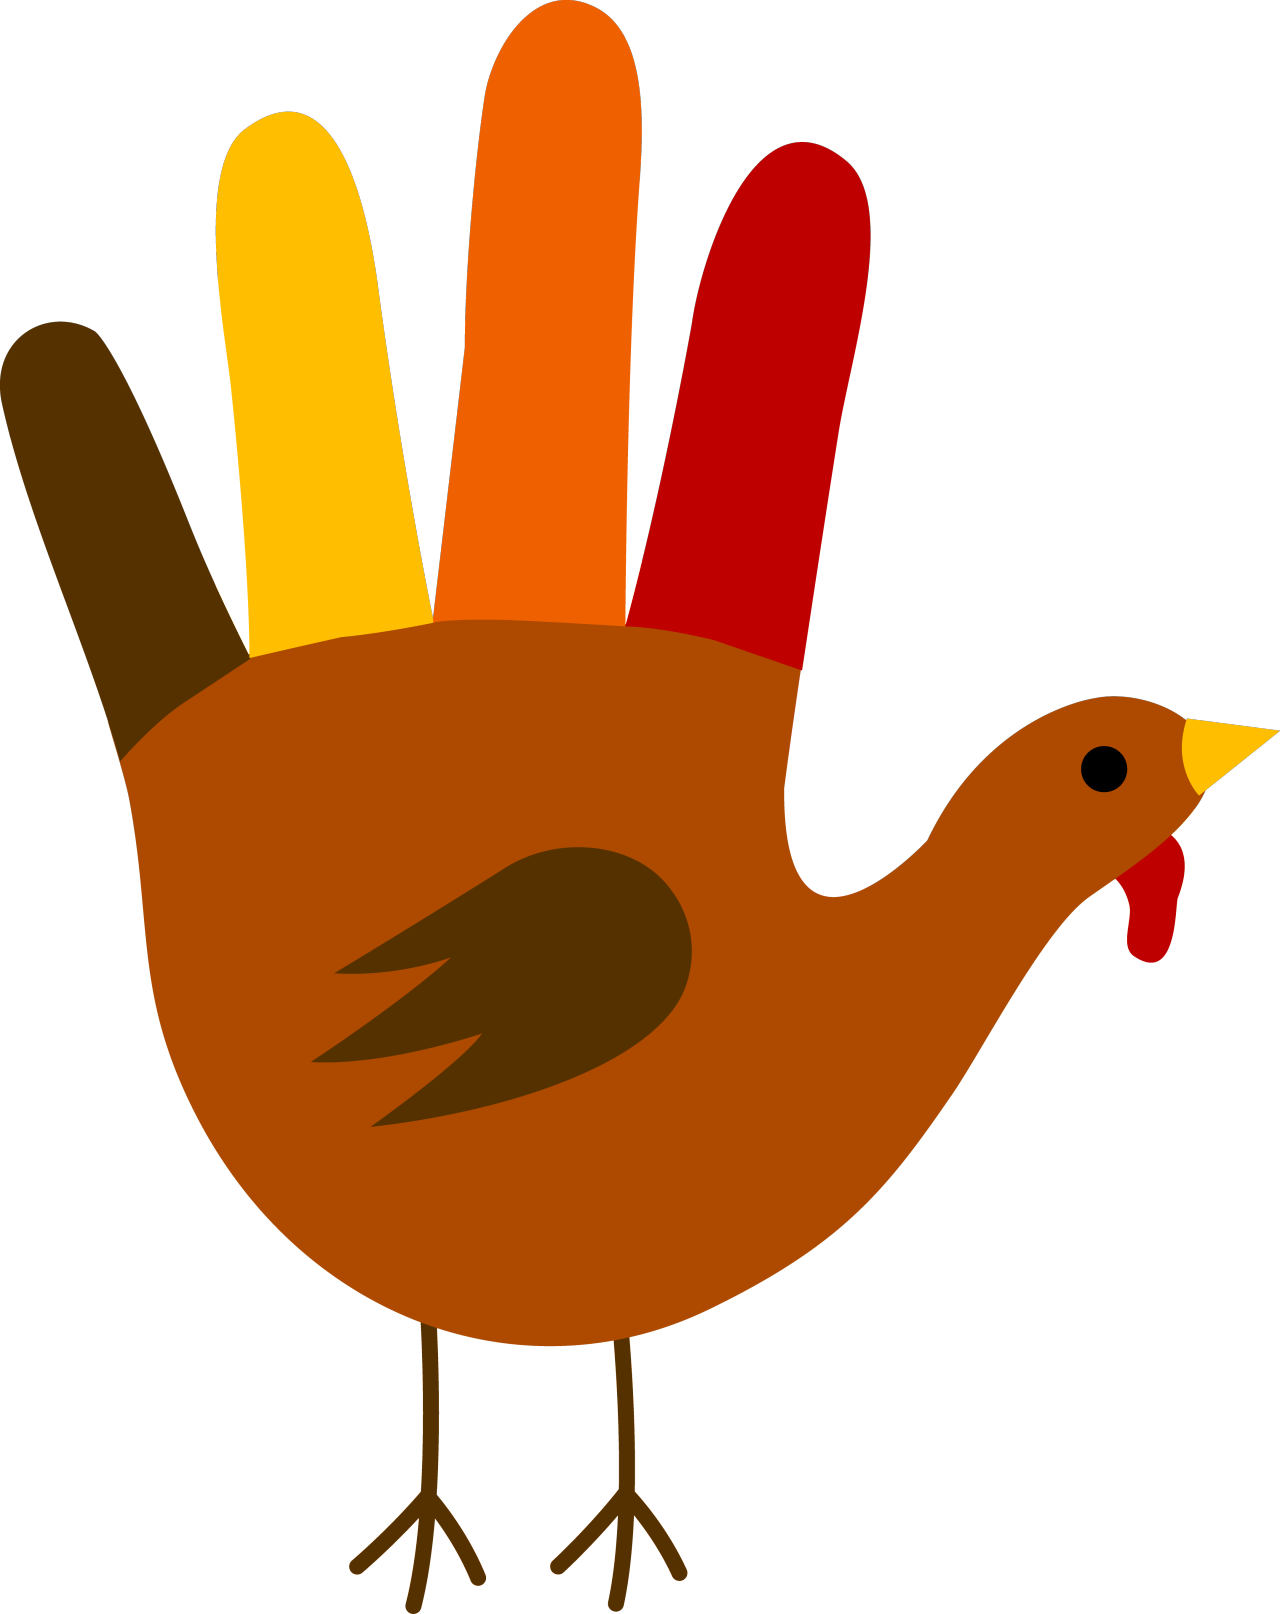 Turkey clipart panic svg royalty free Download WALLPAPER » thanksgiving turkey clipart free | Full Wallpapers svg royalty free